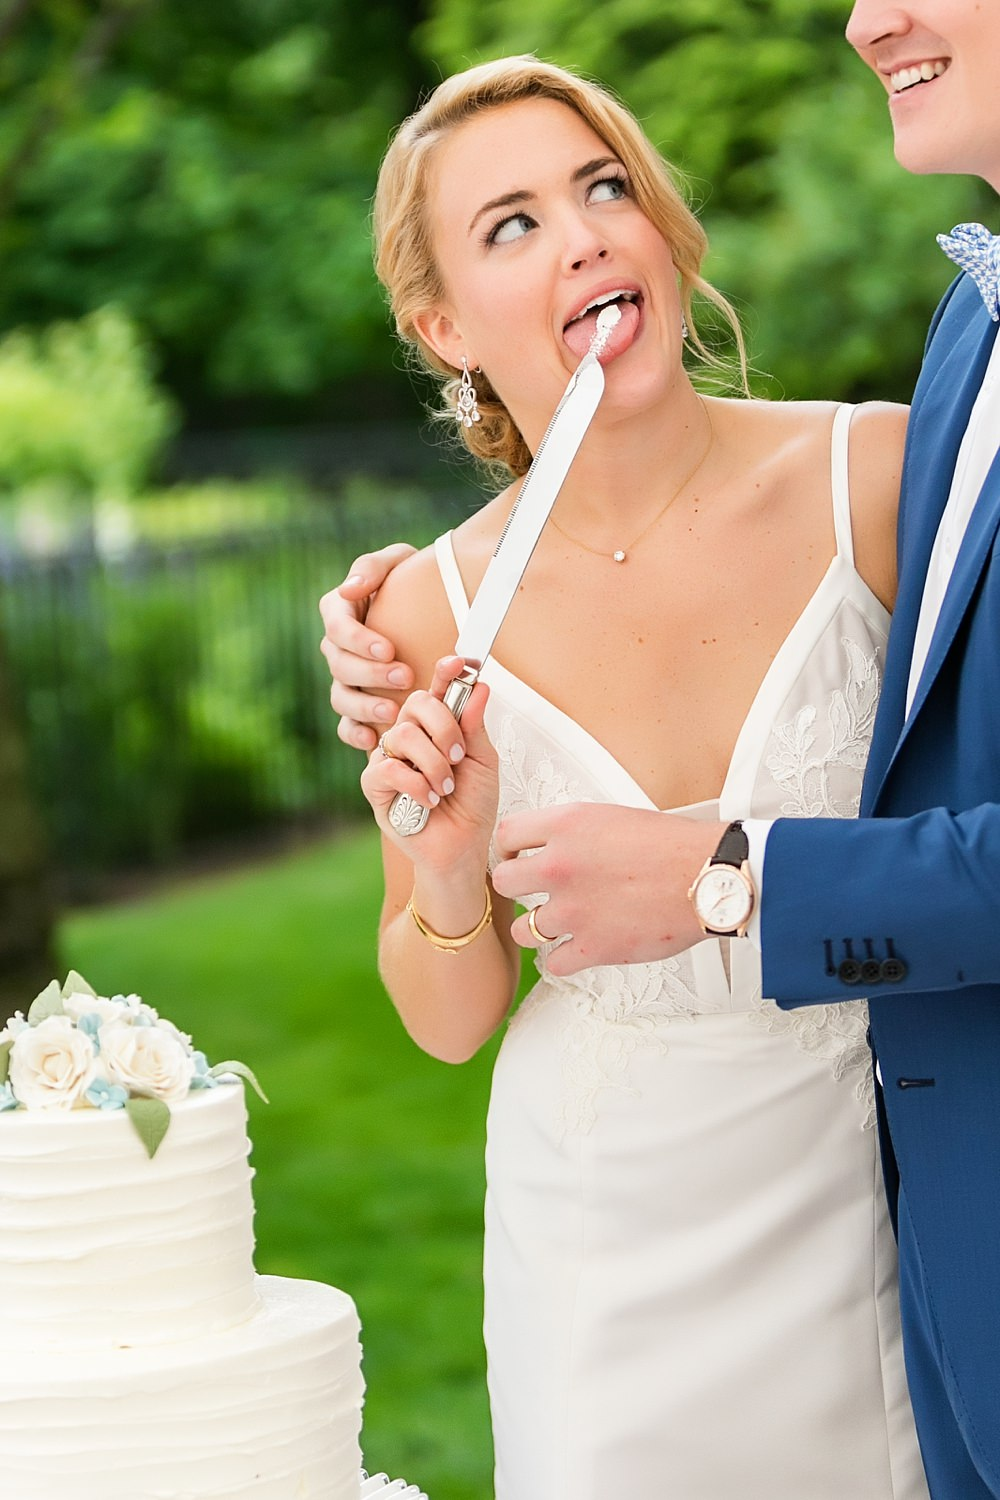 greenwich wedding : memorial day weekend wedding : jody ewen events : vue photography 0135